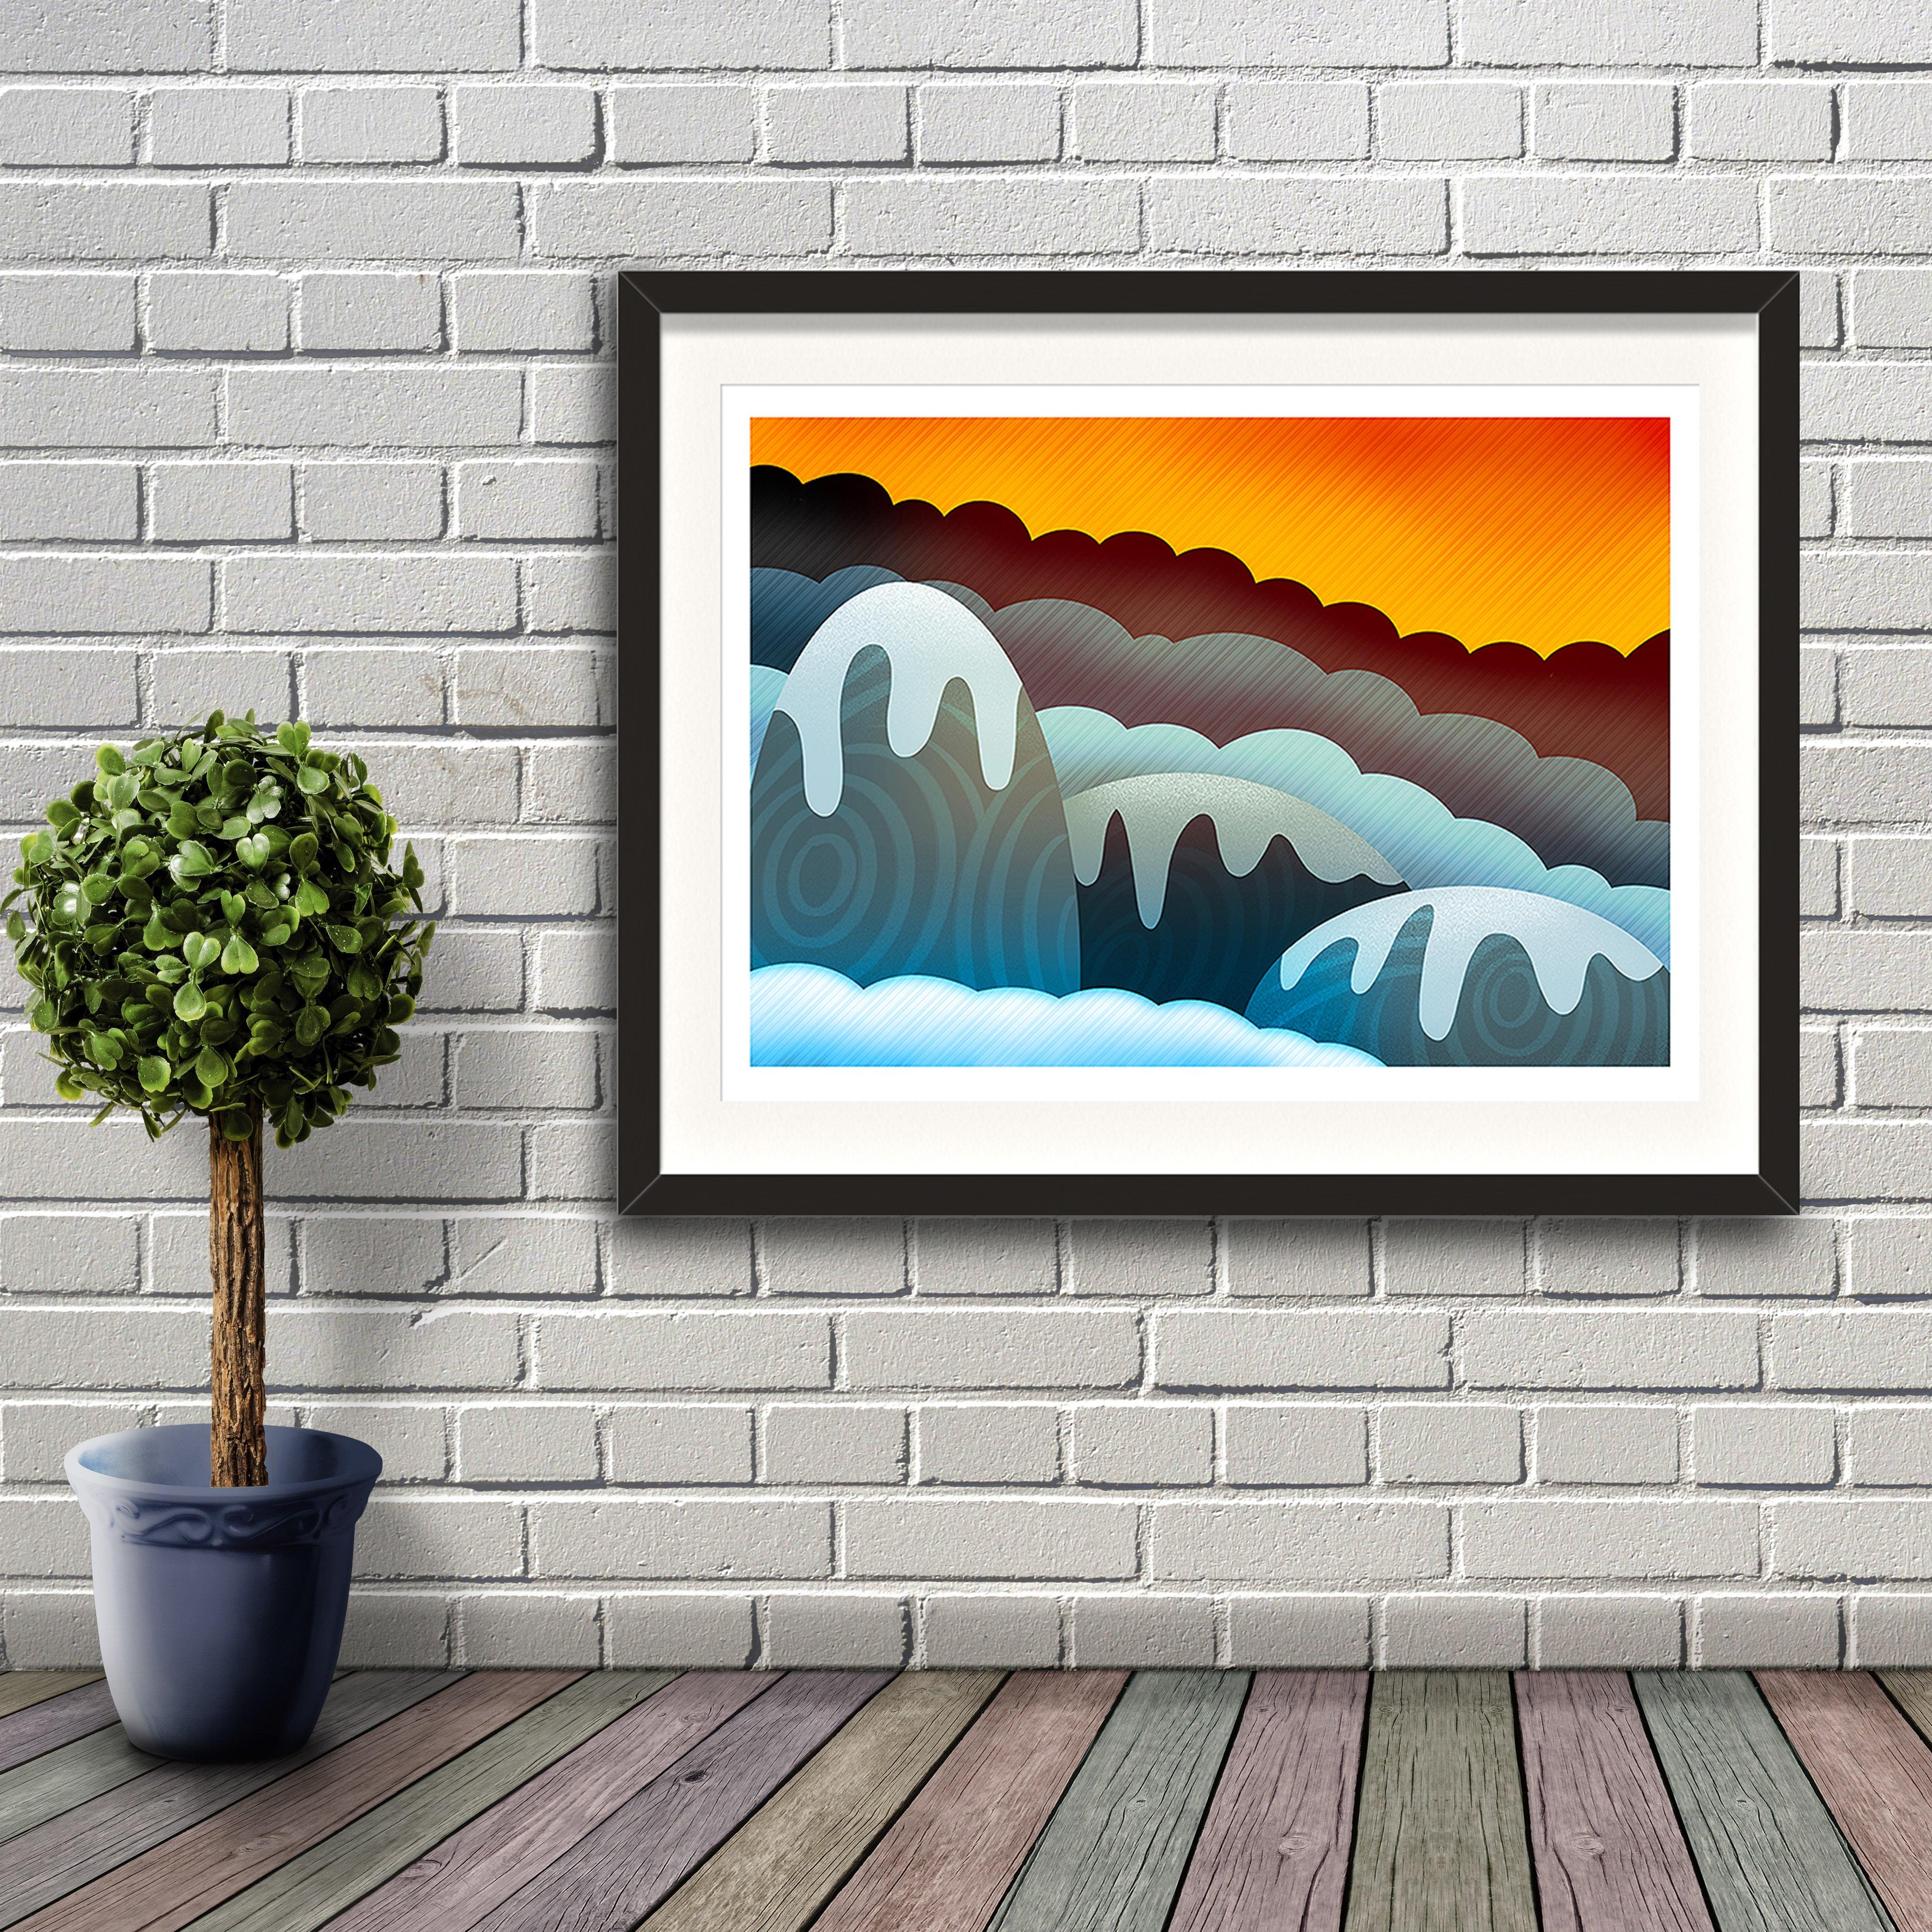 A digital painting called Mountain Glow by Lily Bourne showing an orange sky with snow covered rounded animated mountains. Artwork shown in a black frame hanging on a brick wall.